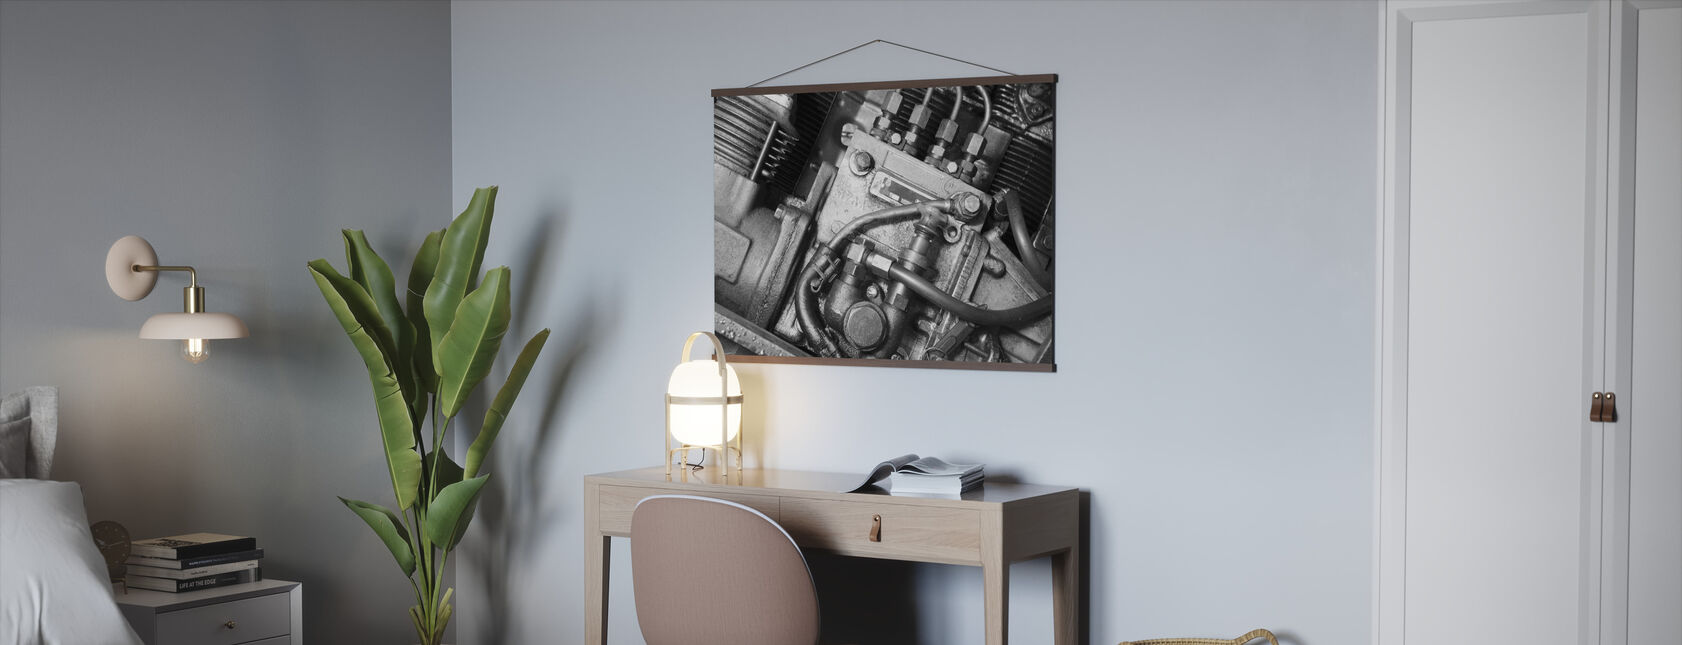 Car Engine - Monochrome - Poster - Office